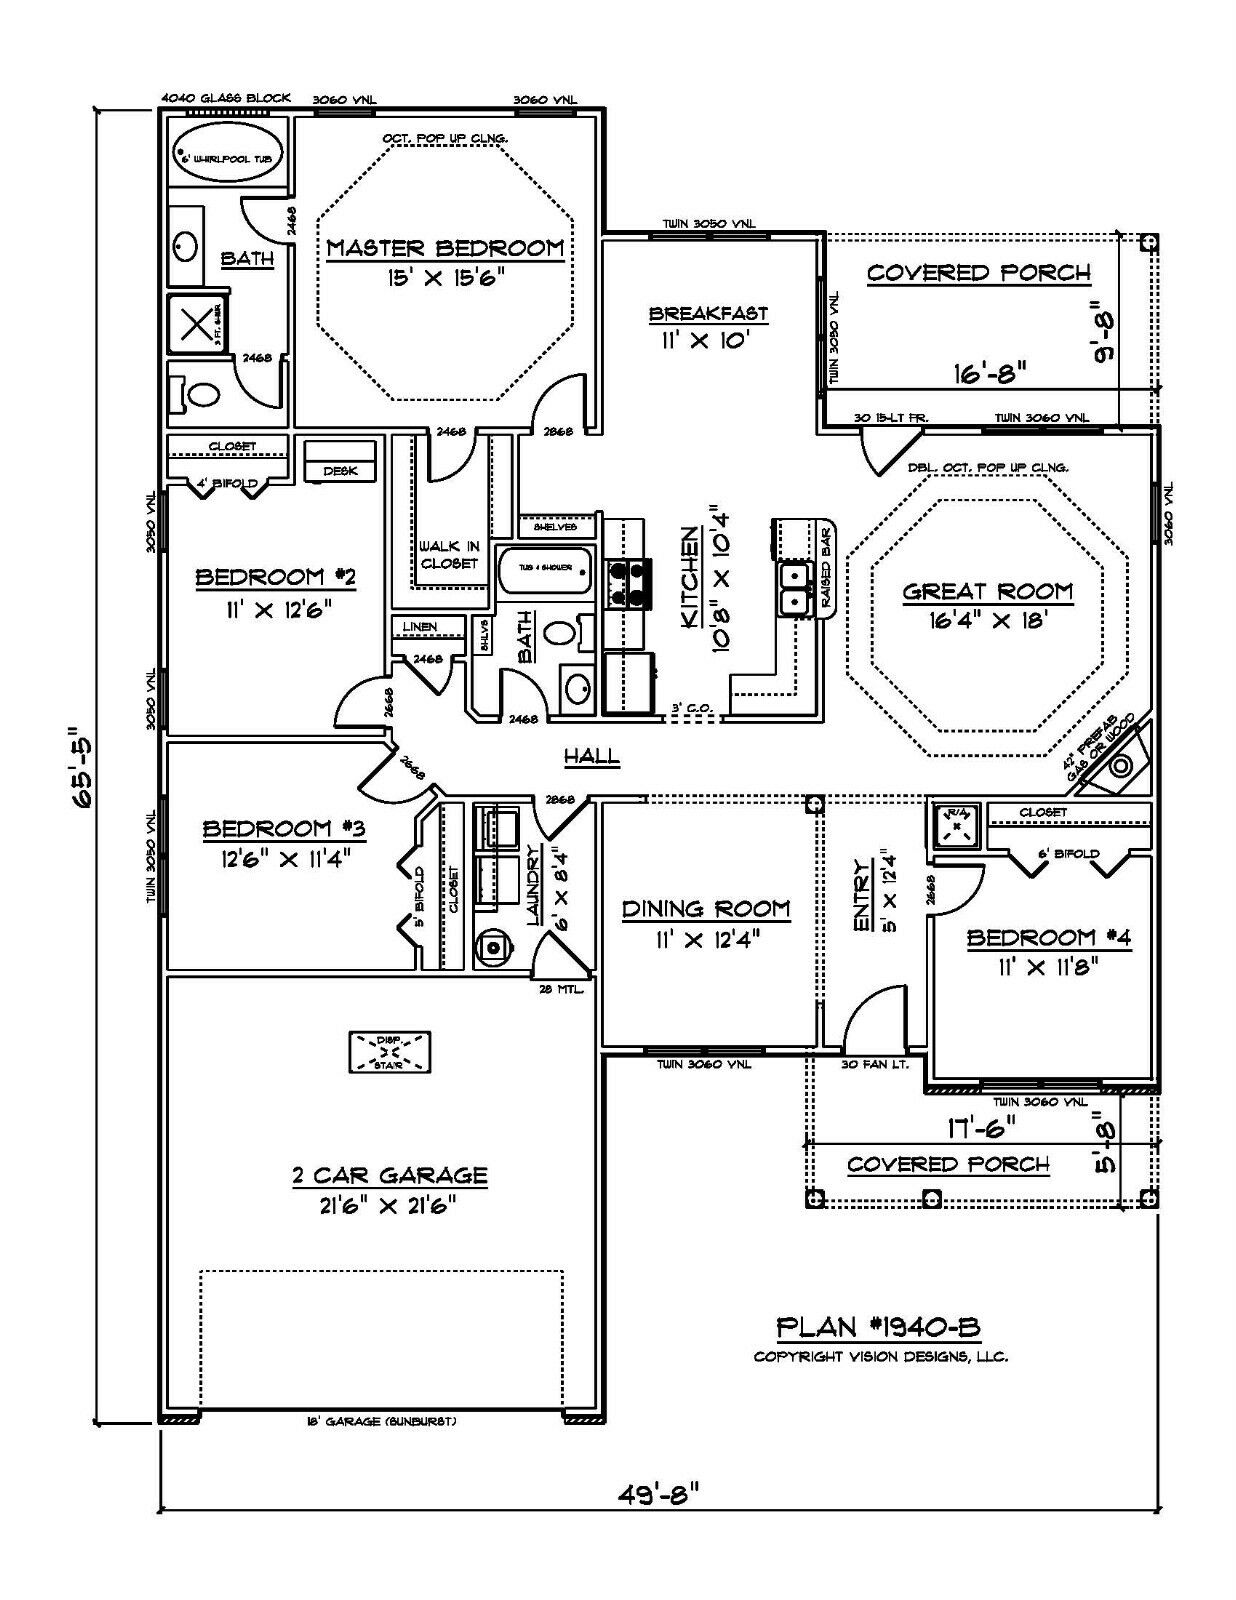 House plans for 1940 sq ft 4 for 1940 house plans